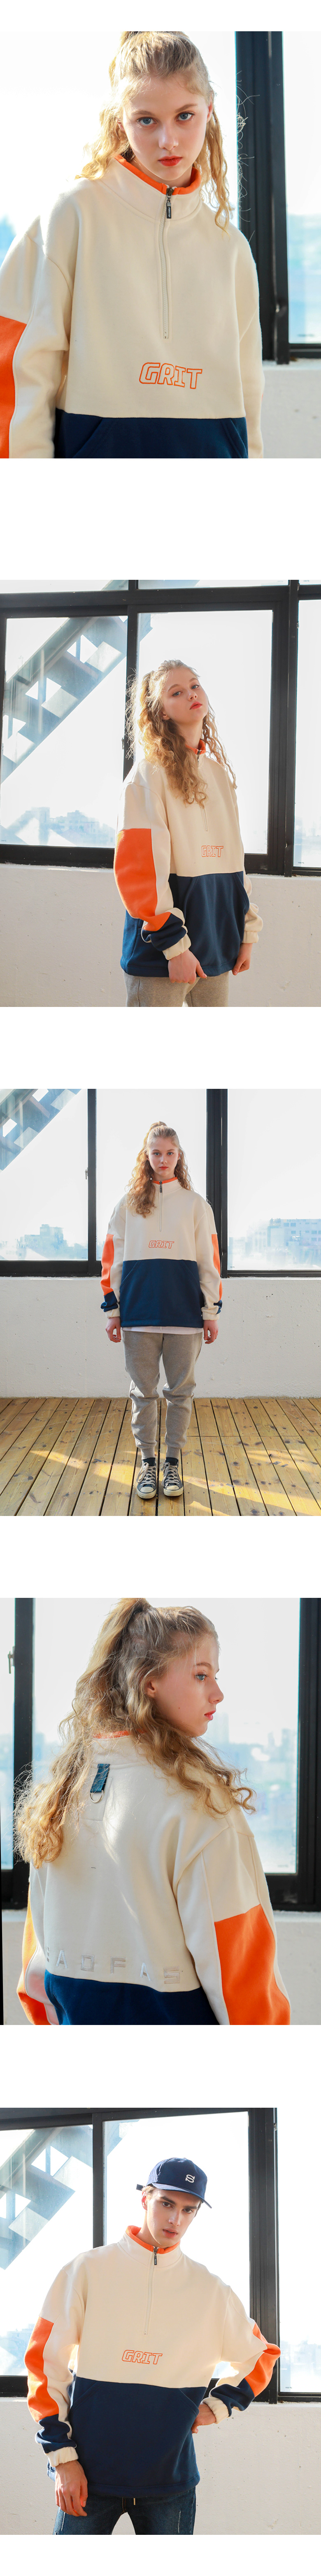 20190118_ps_grit_sweatshirt_model_sm_03.jpg